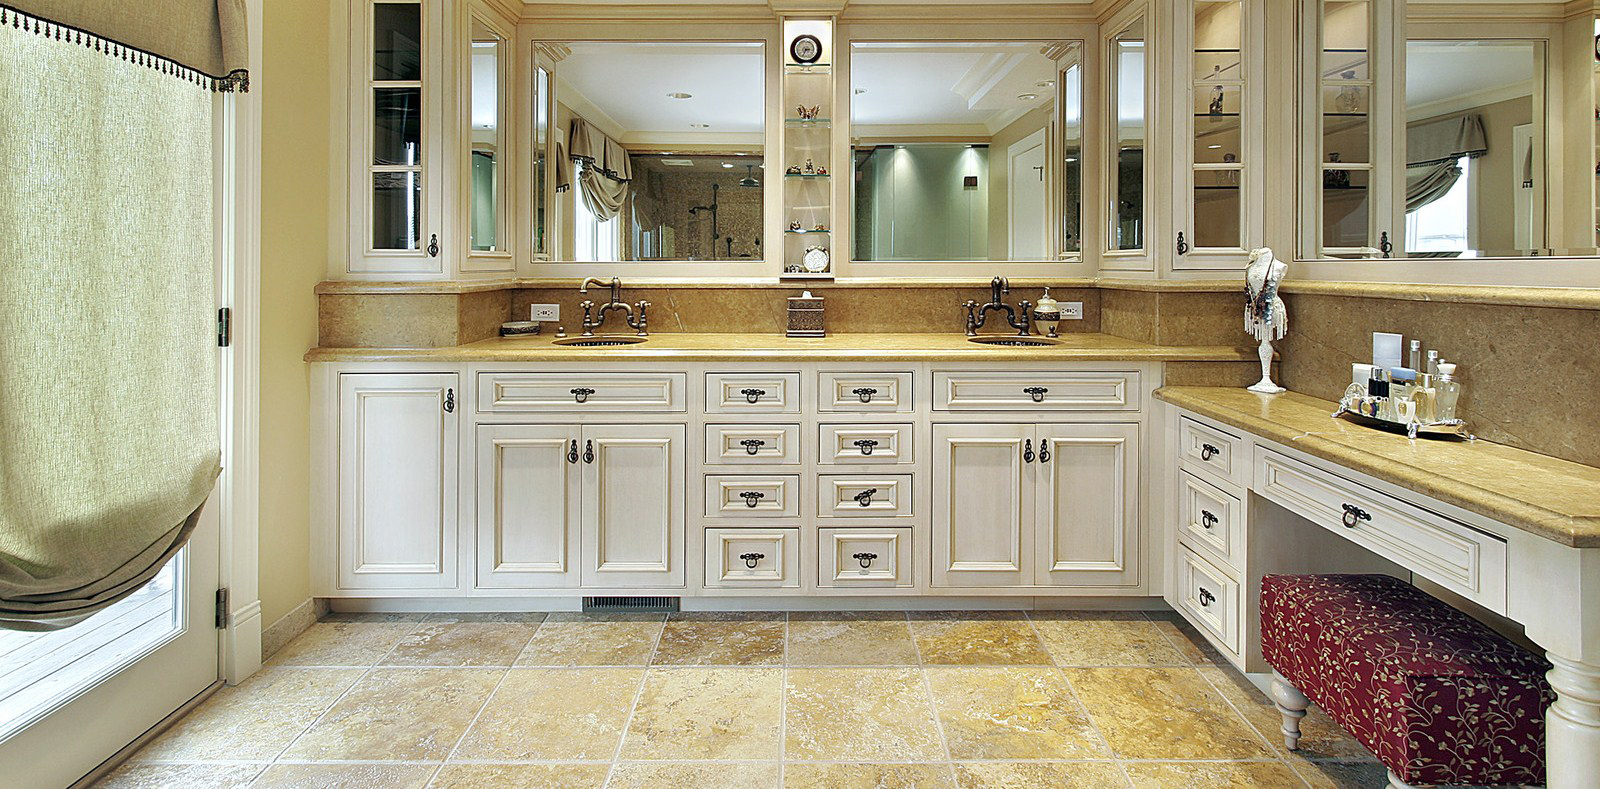 Impressive White Kitchens with Granite Countertops 1600 x 789 · 837 kB · jpeg